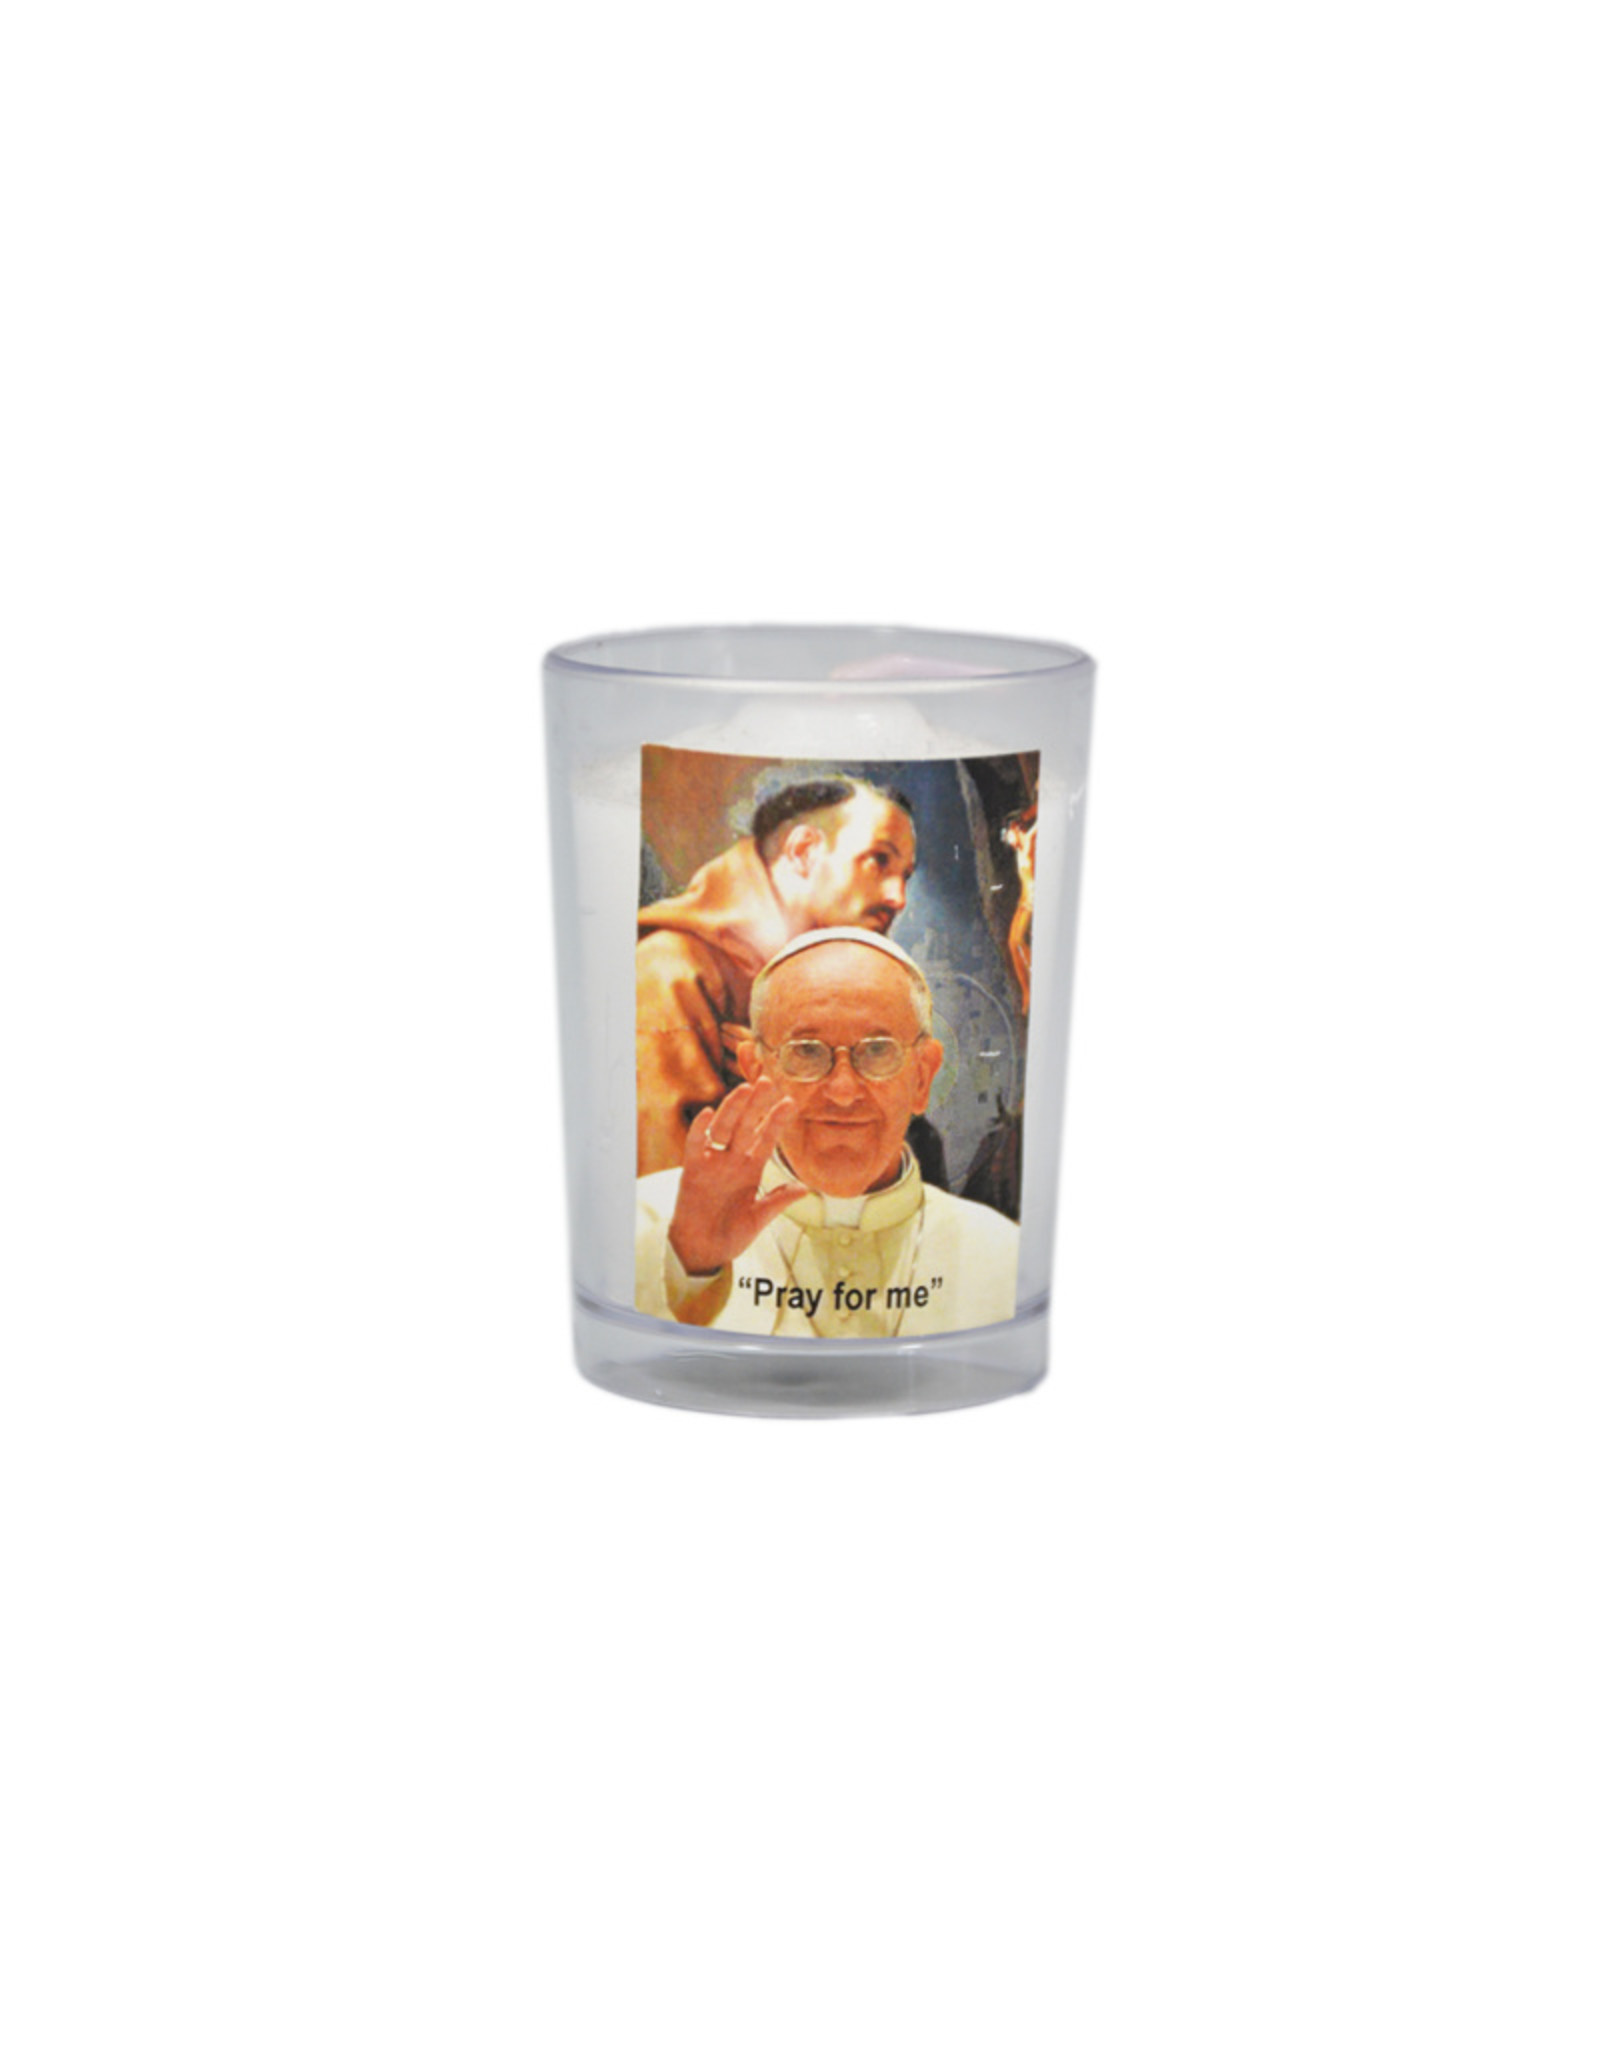 Chandelles Tradition / Tradition Candles Pope Francis votive candle